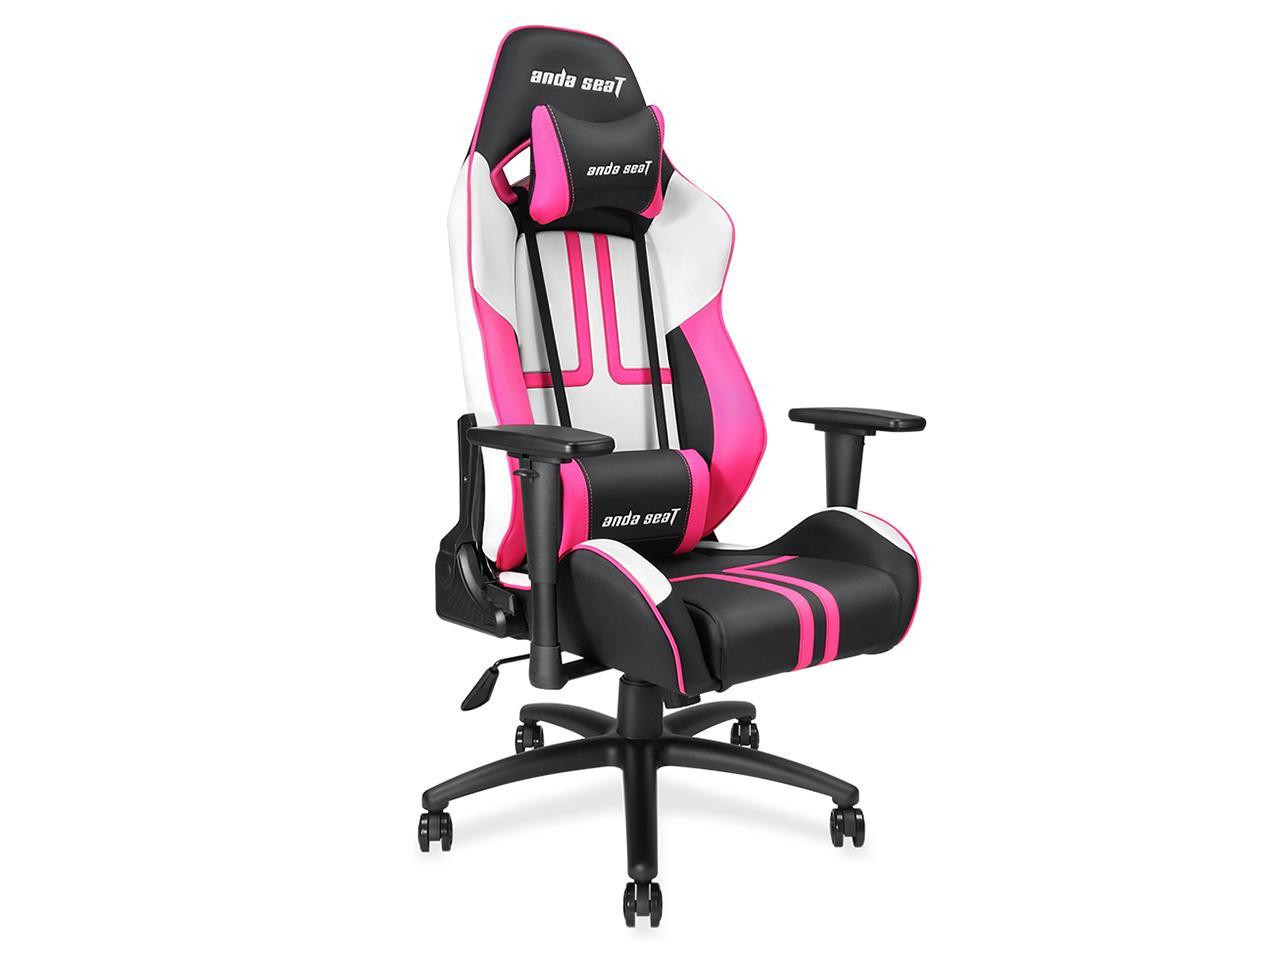 Brilliant Anda Seat Viper Gaming Chair Black White Pink Gaming Chairs Machost Co Dining Chair Design Ideas Machostcouk